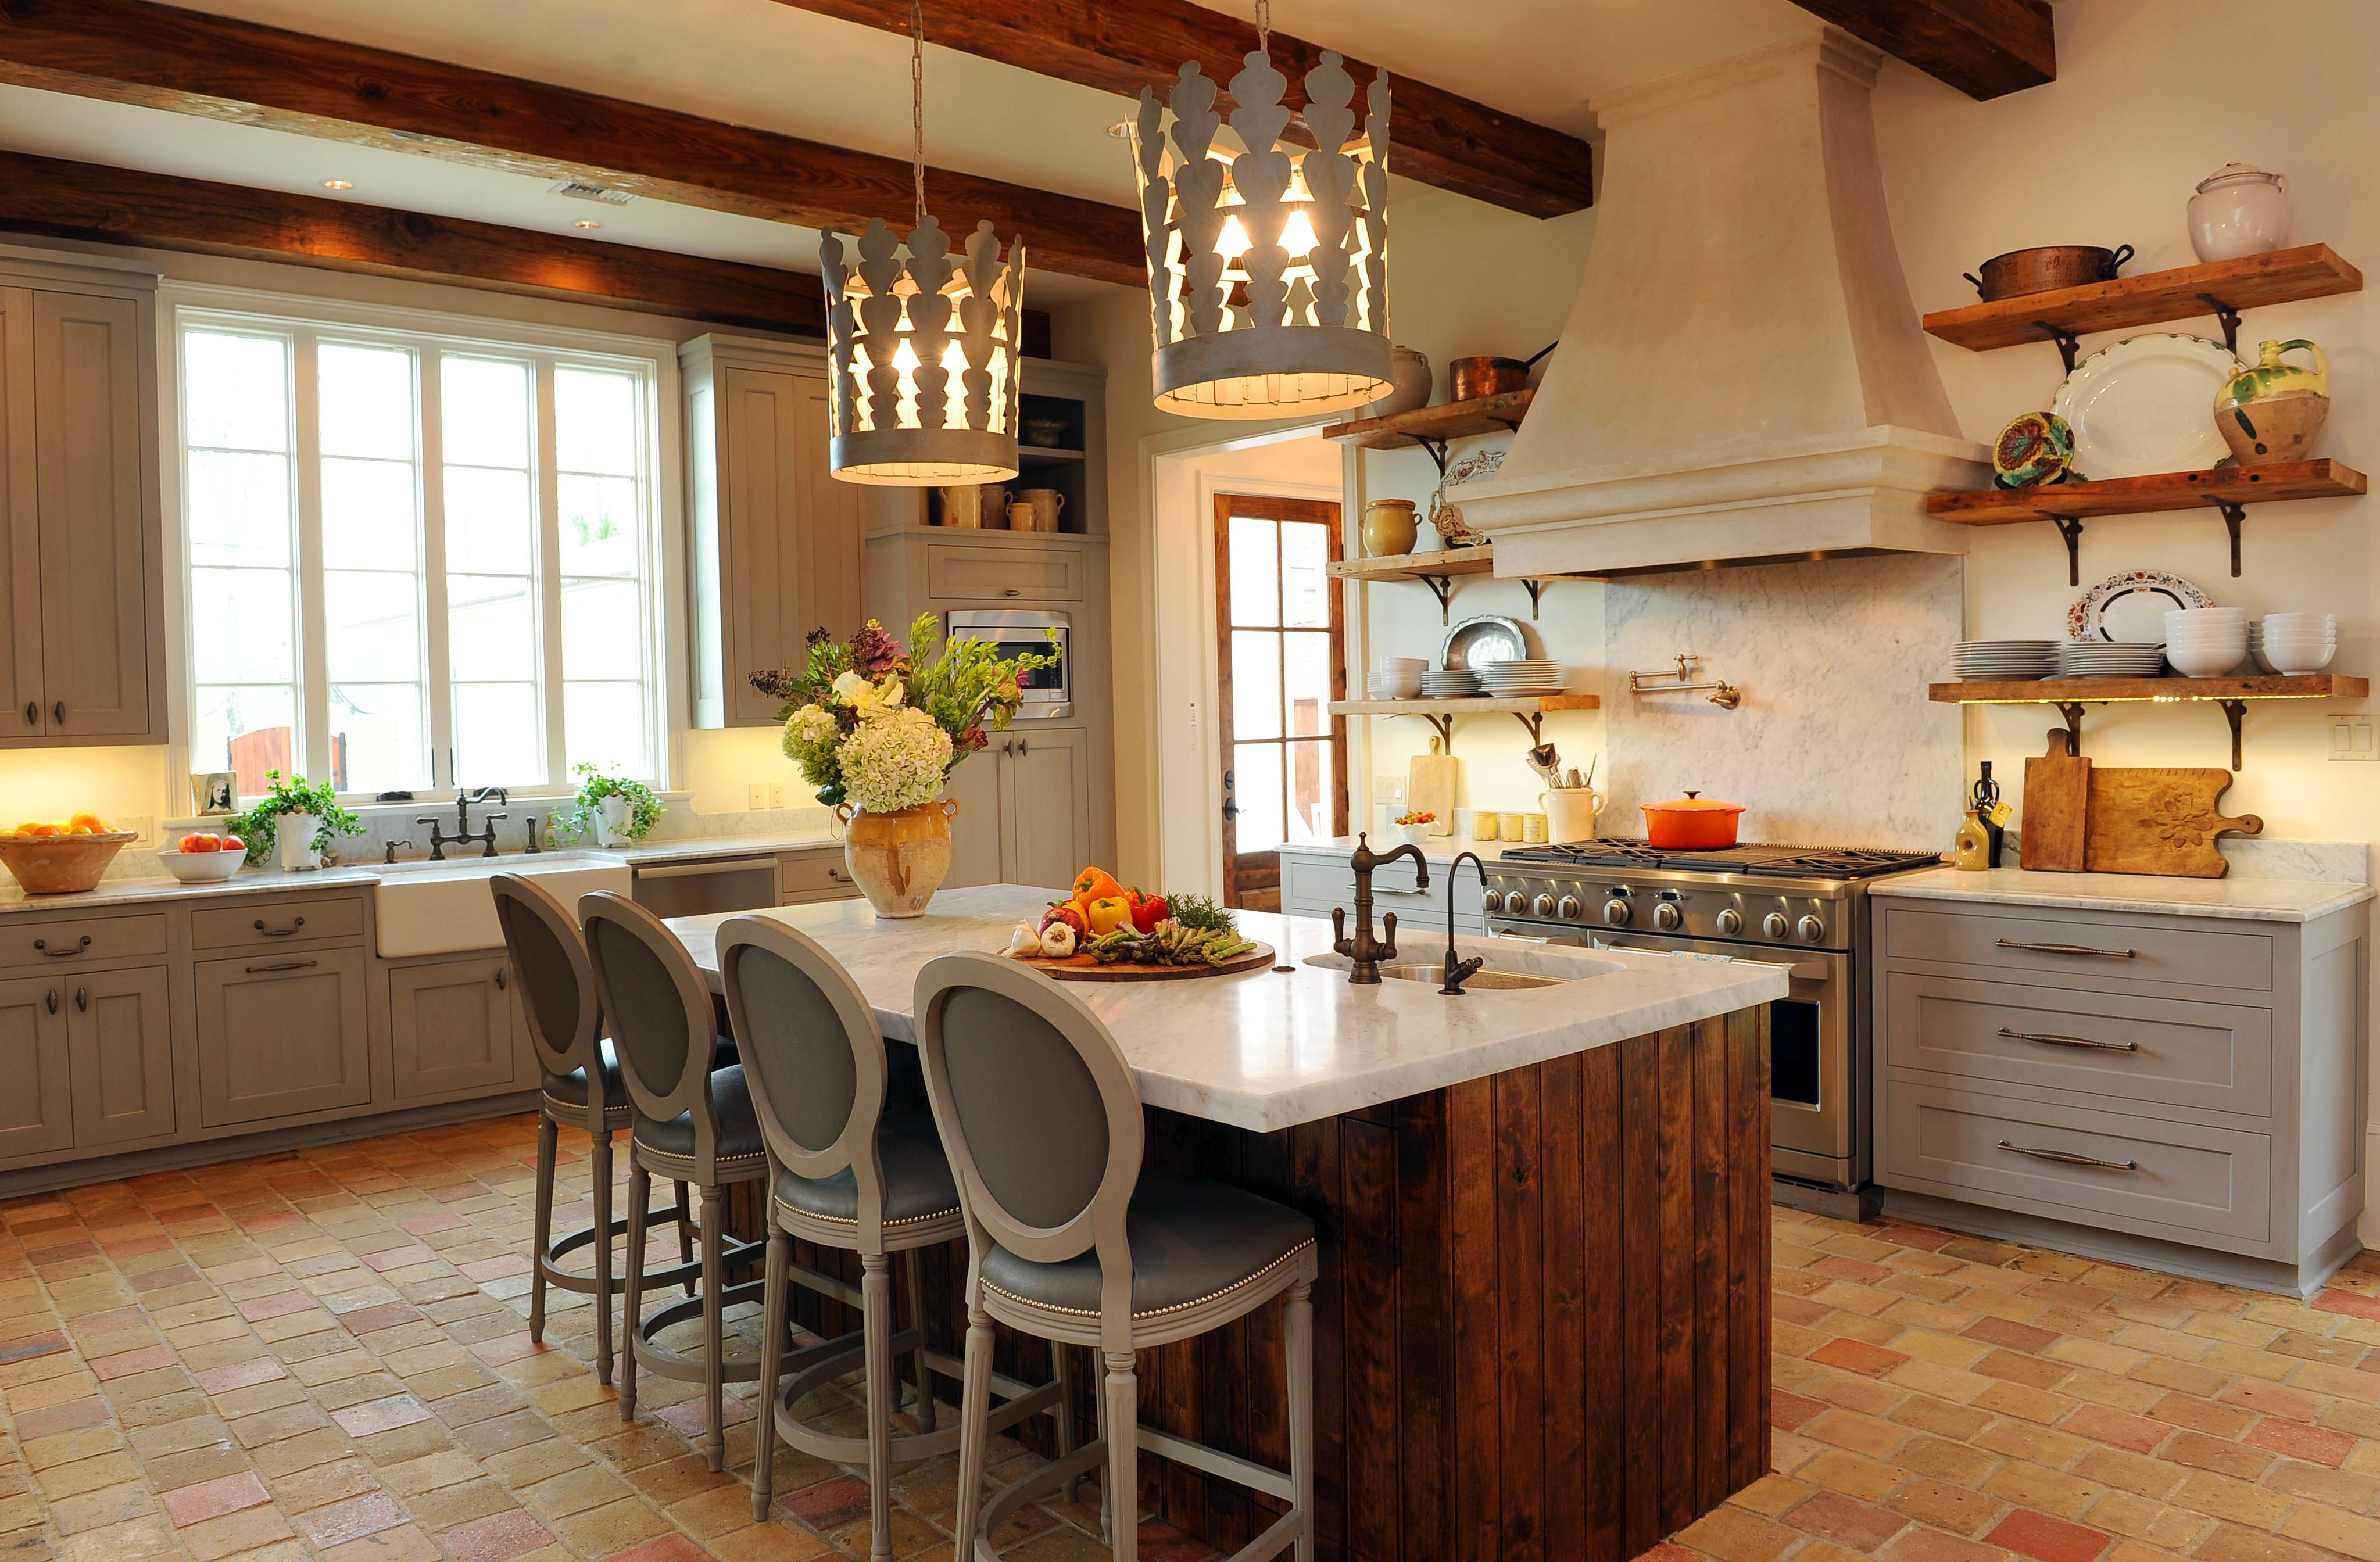 Antique White Kitchen Cabinets Ideas Kitchen Countertops Are Bianco Carrara Honed Marble